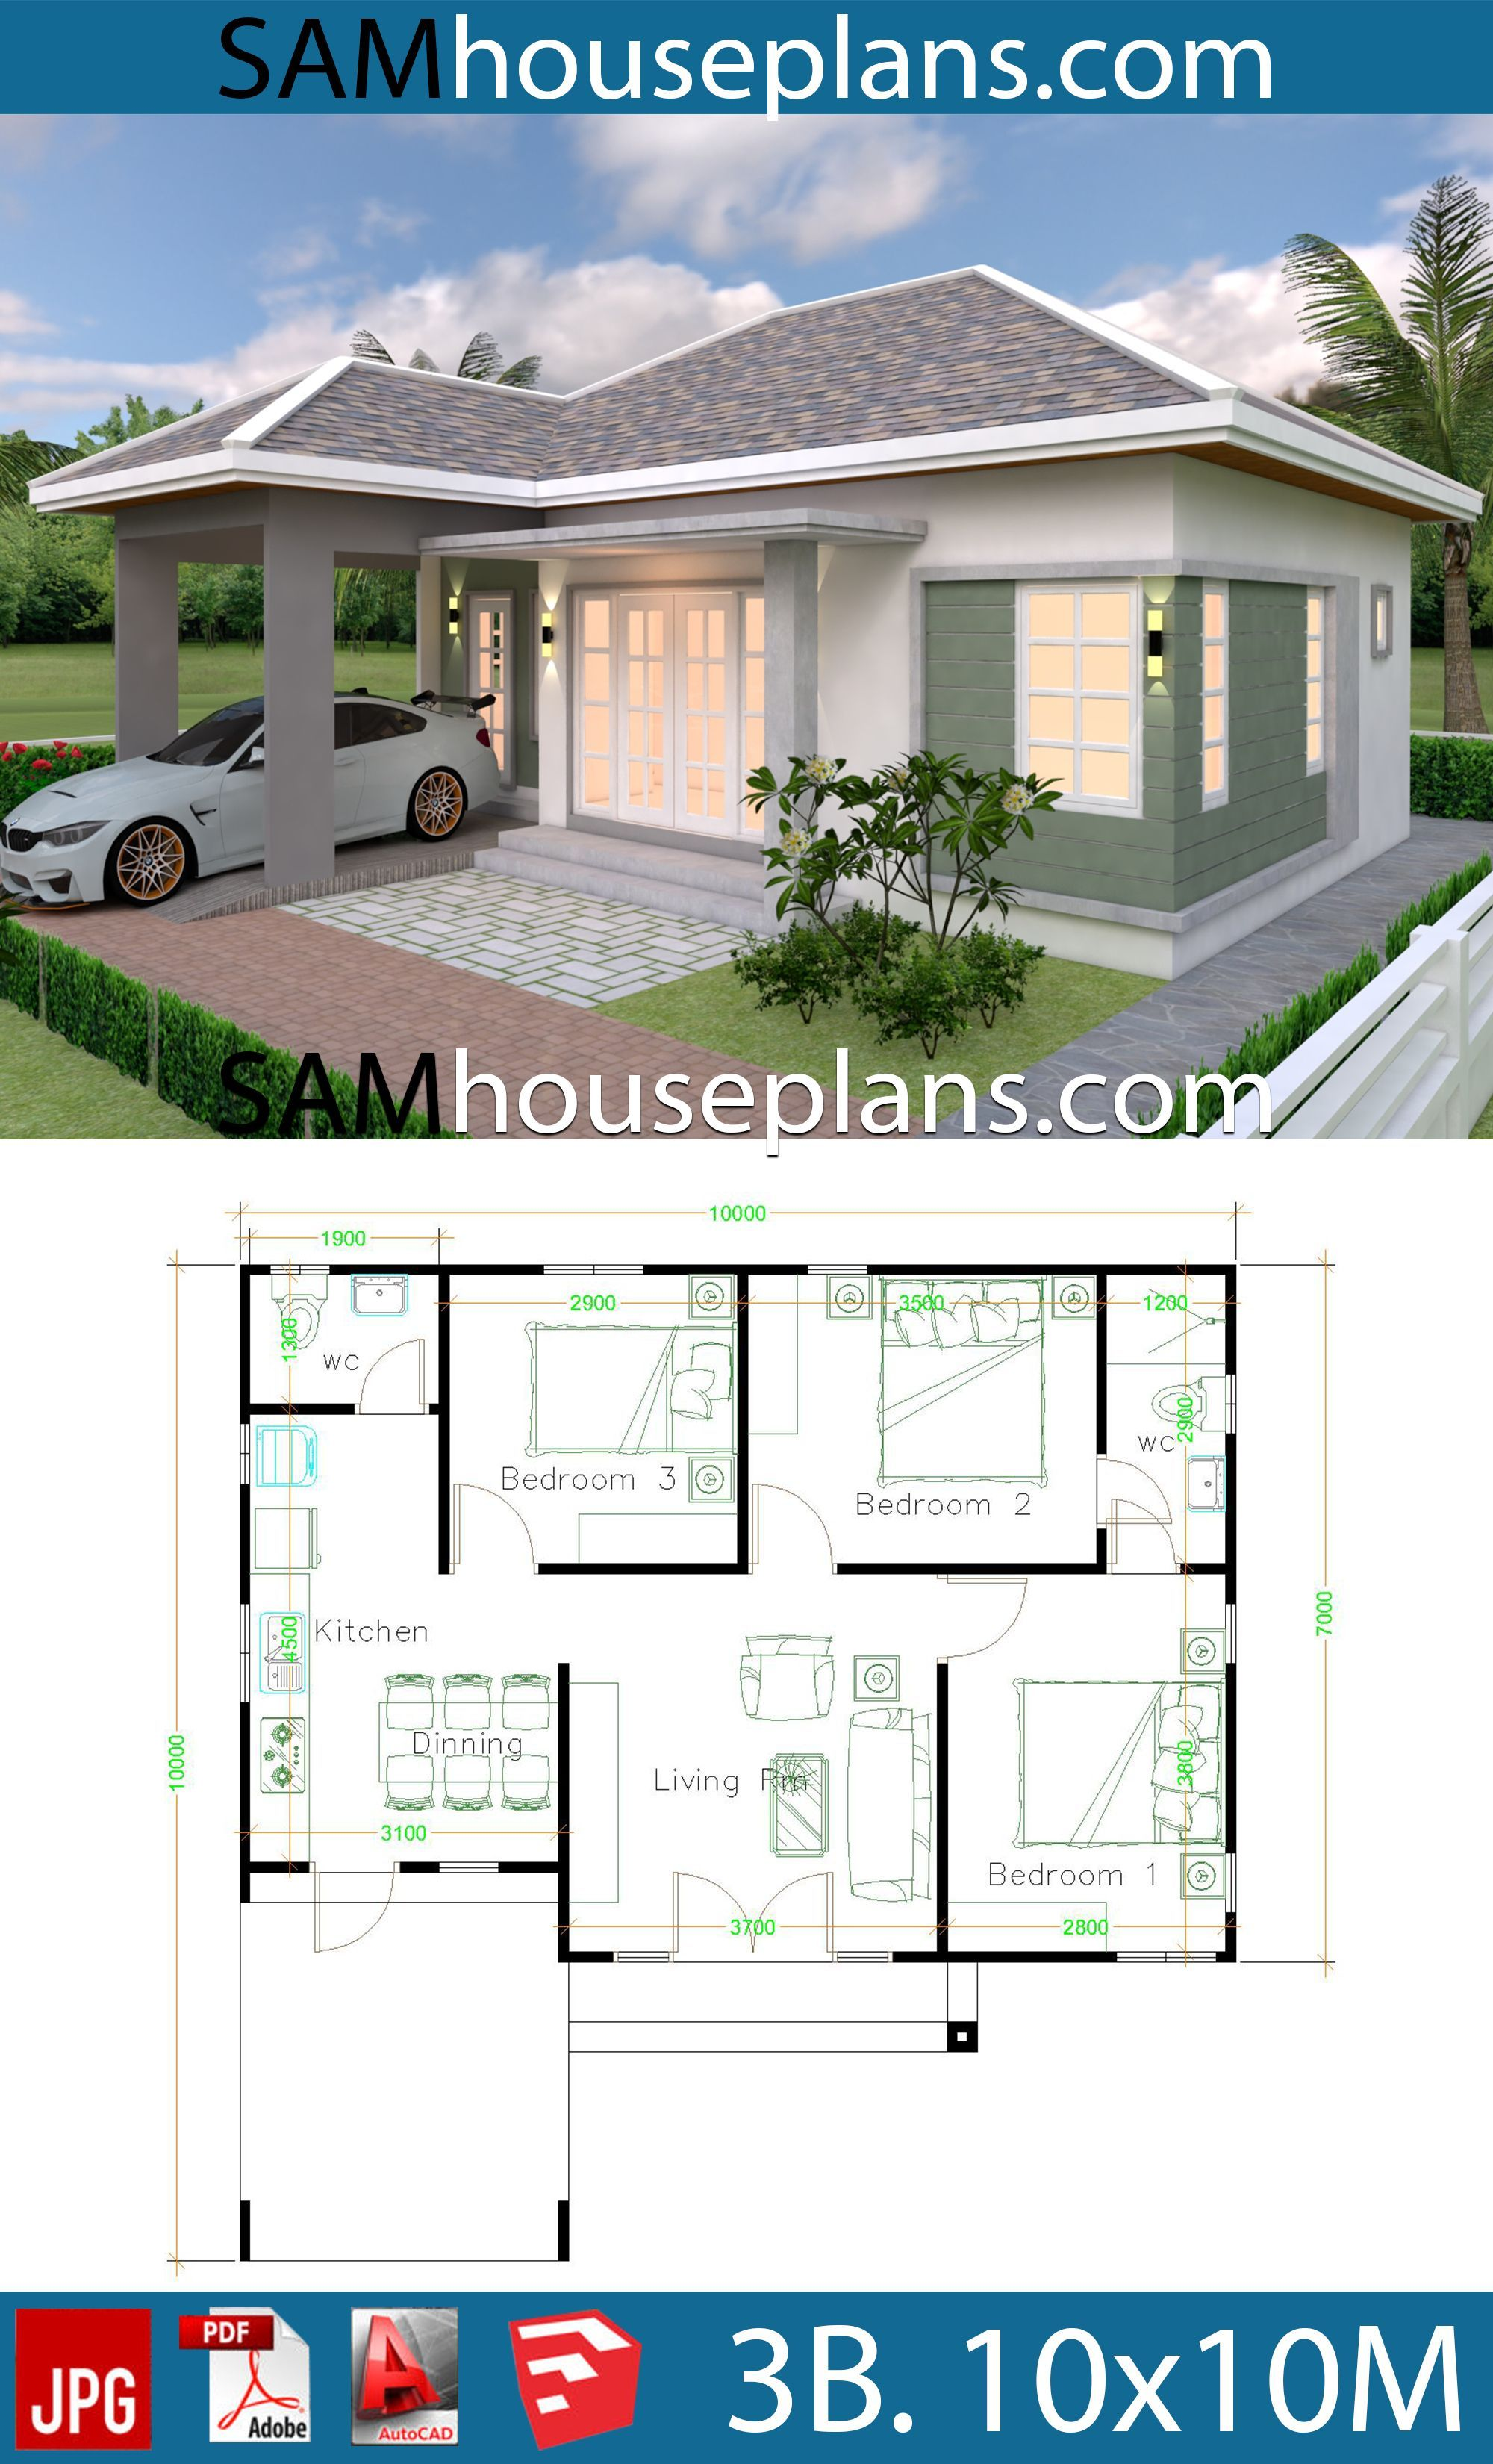 House Plans 10x10 With 3 Bedrooms House Plans Free Downloads Architectural House Plans Sims House Plans Small House Design Plans